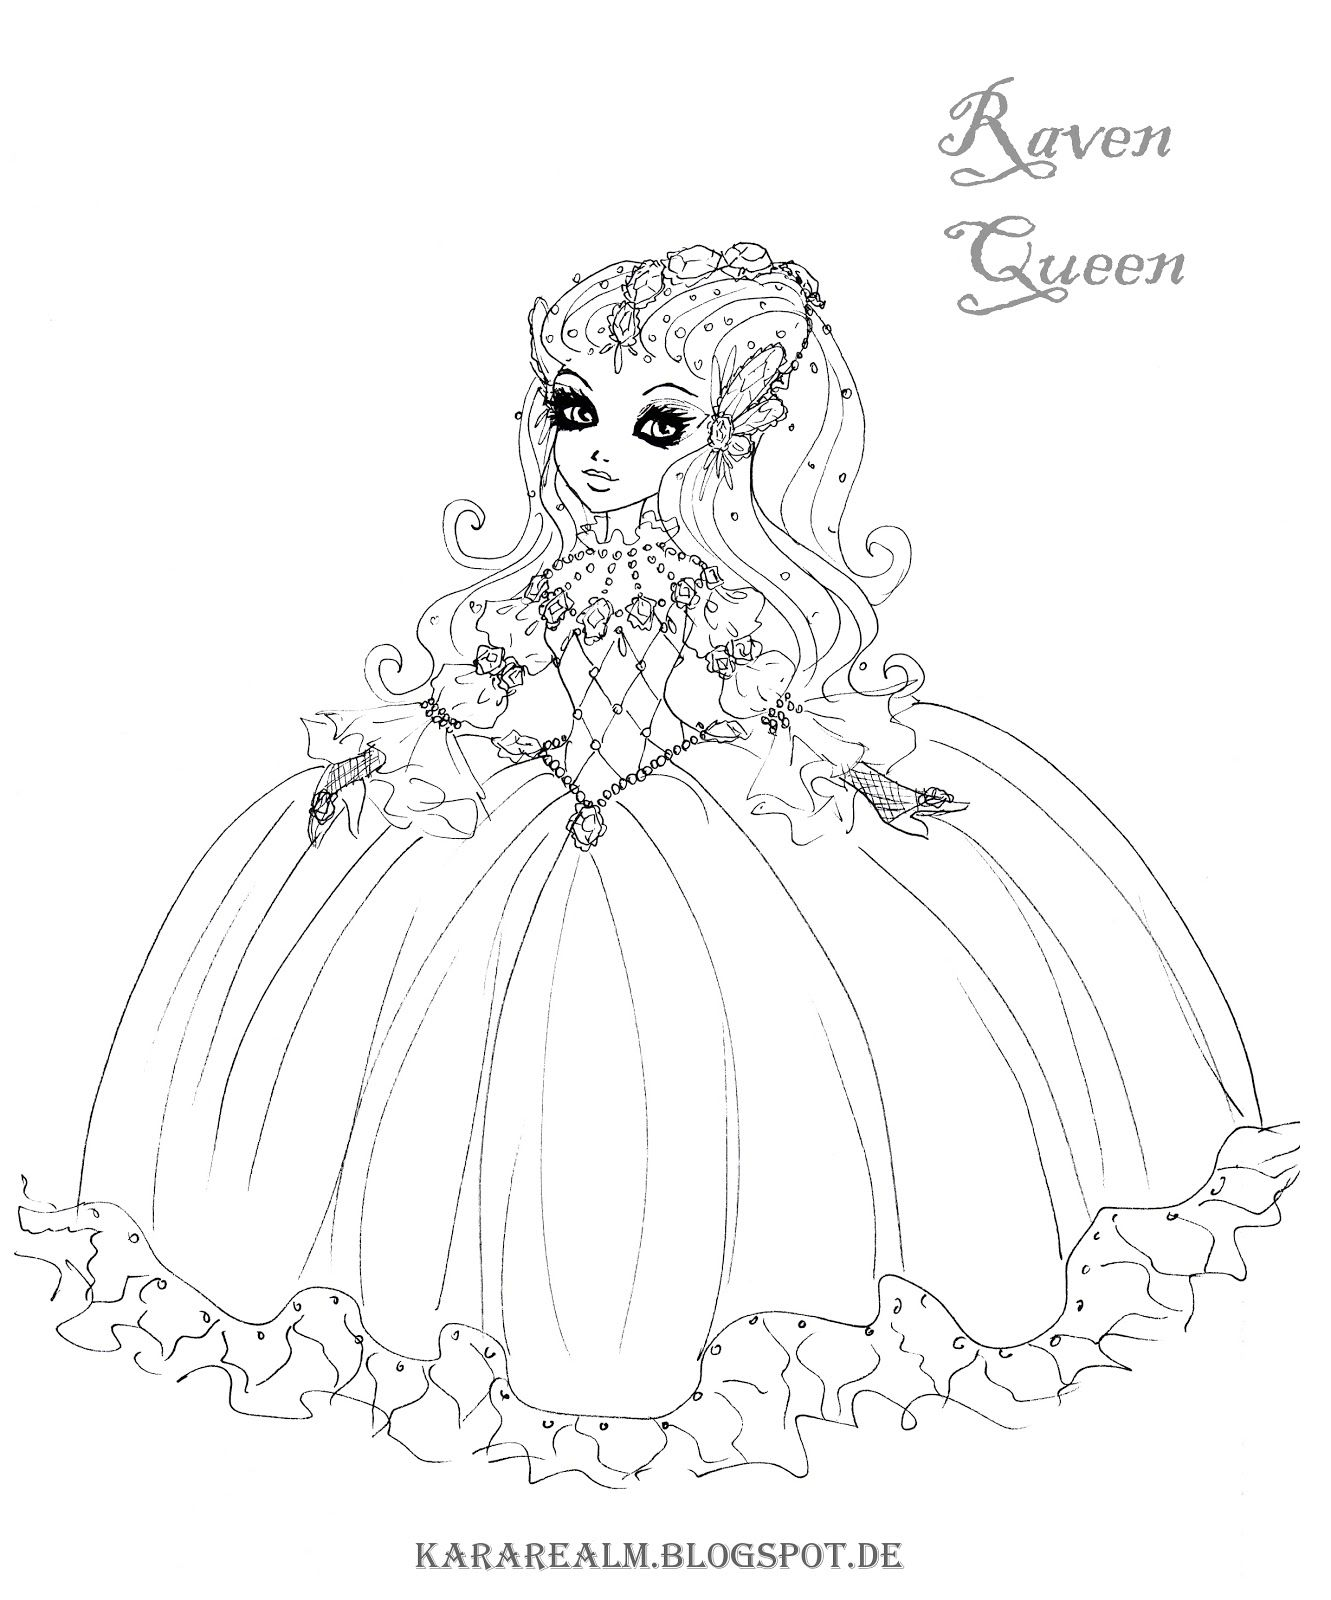 Kara Realm: Ever After High Coloring Pages | Raven Queen ...